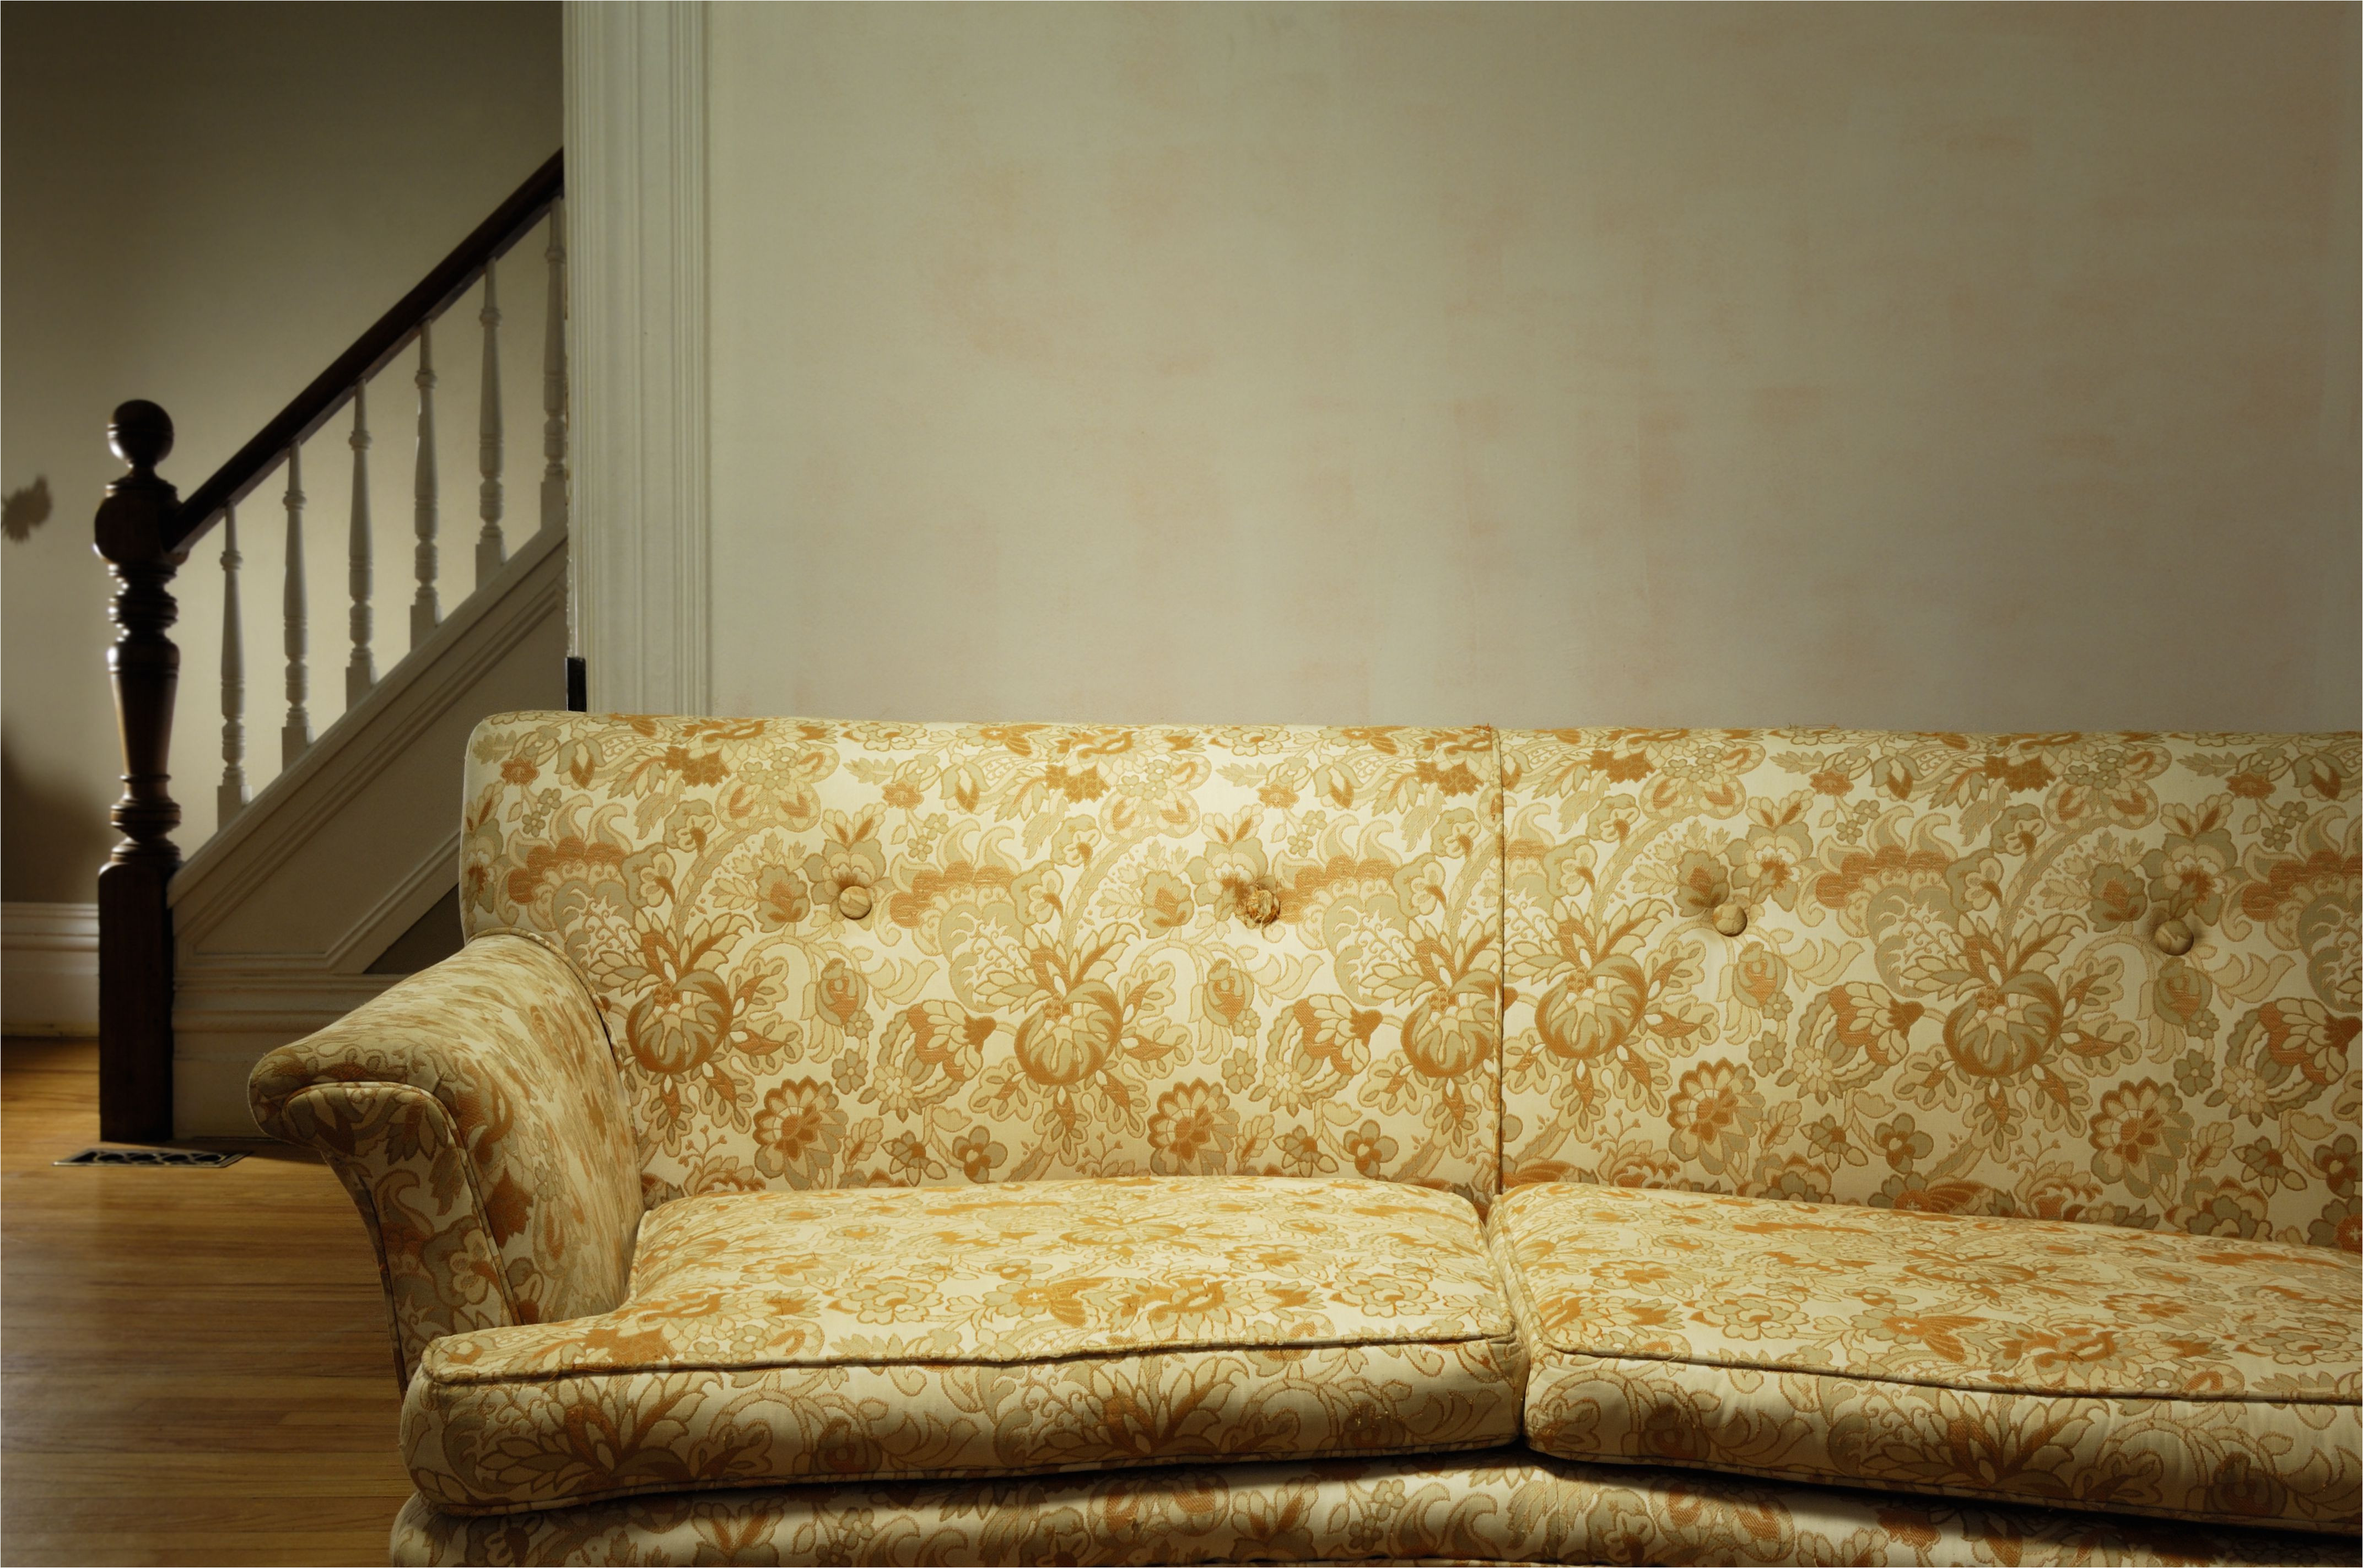 old couch in a retro living room 118197540 57c49d2f3df78cc16ec96b8a jpg